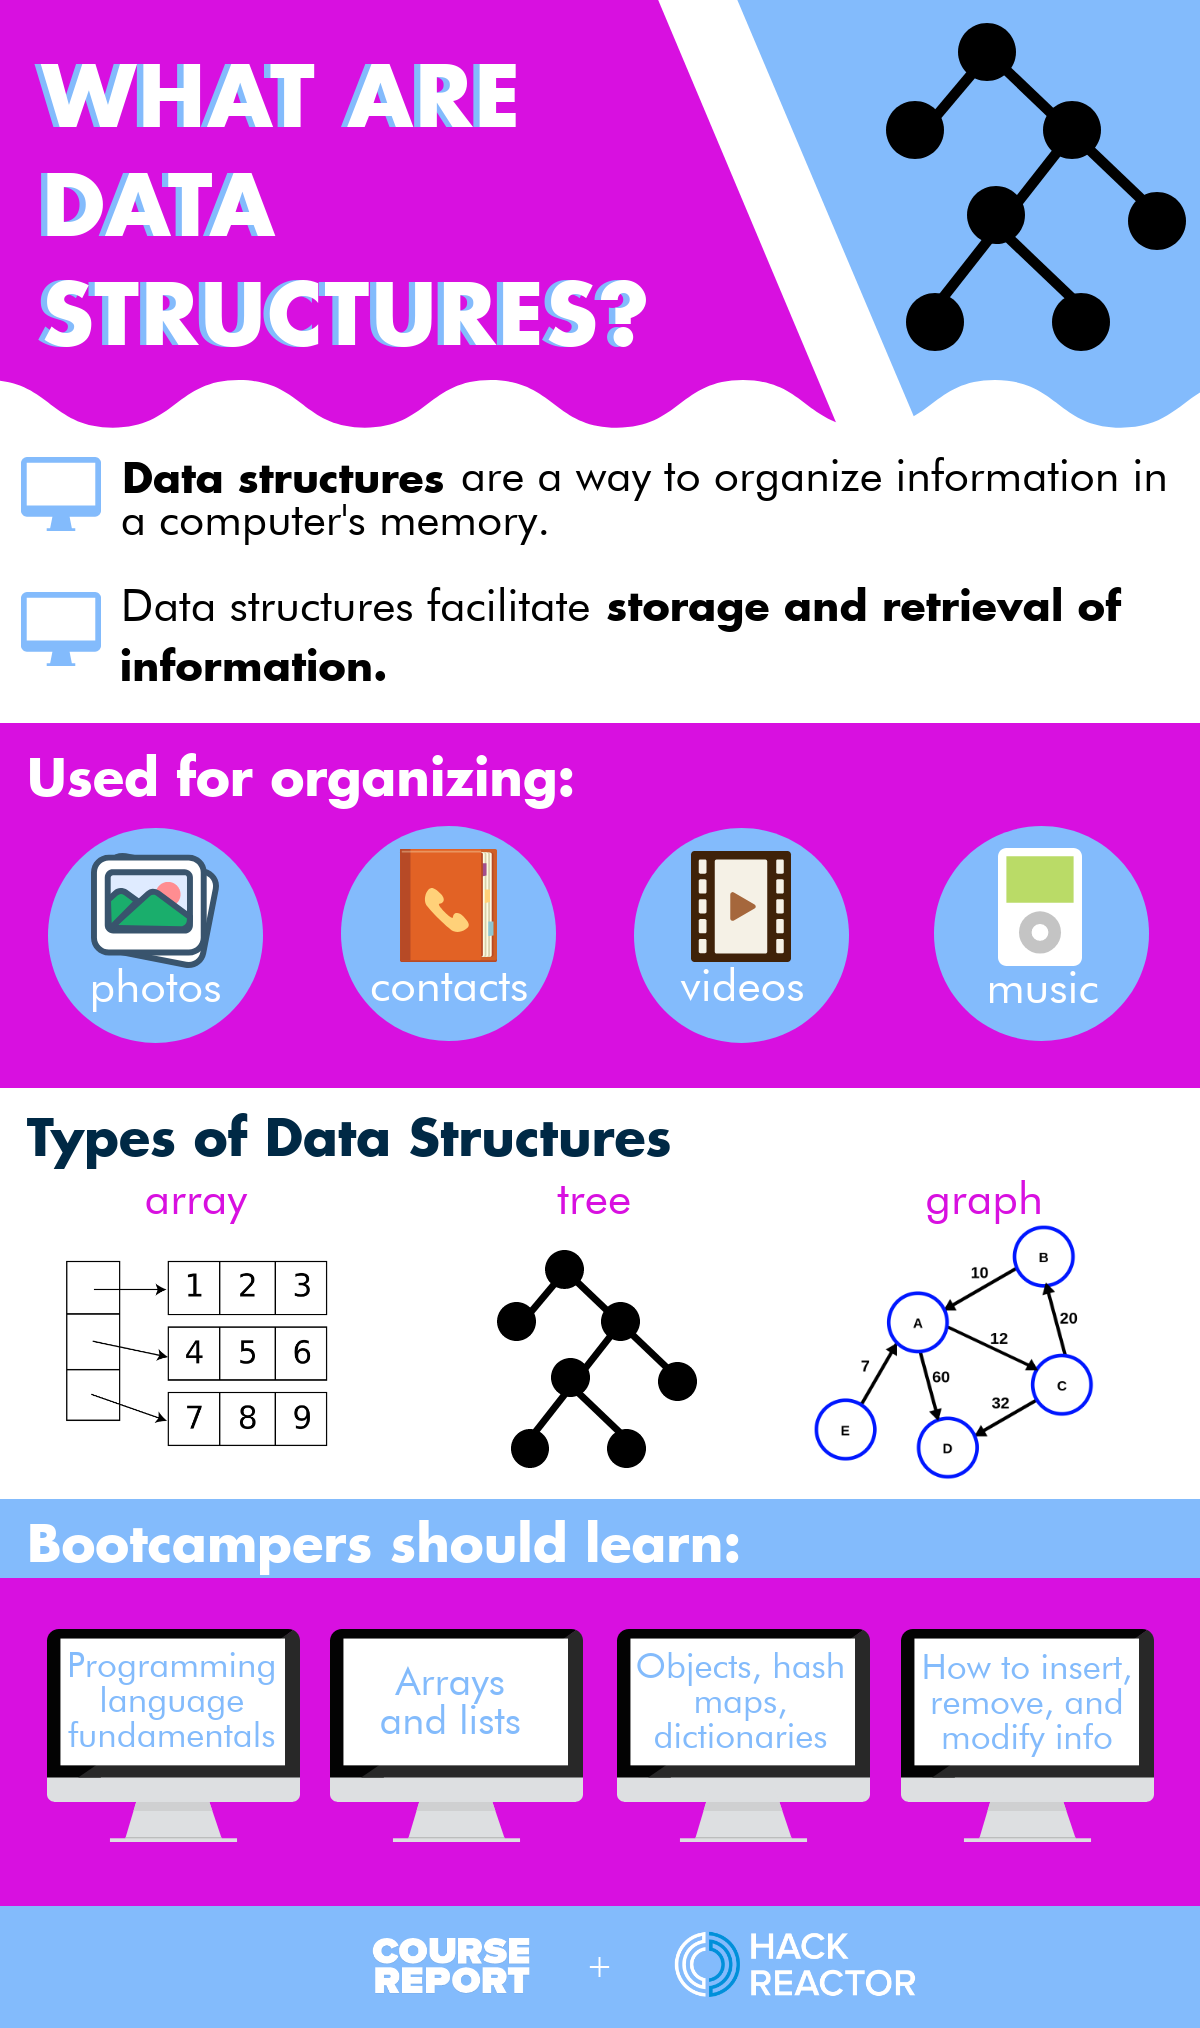 what-are-data-structures-hack-reactor